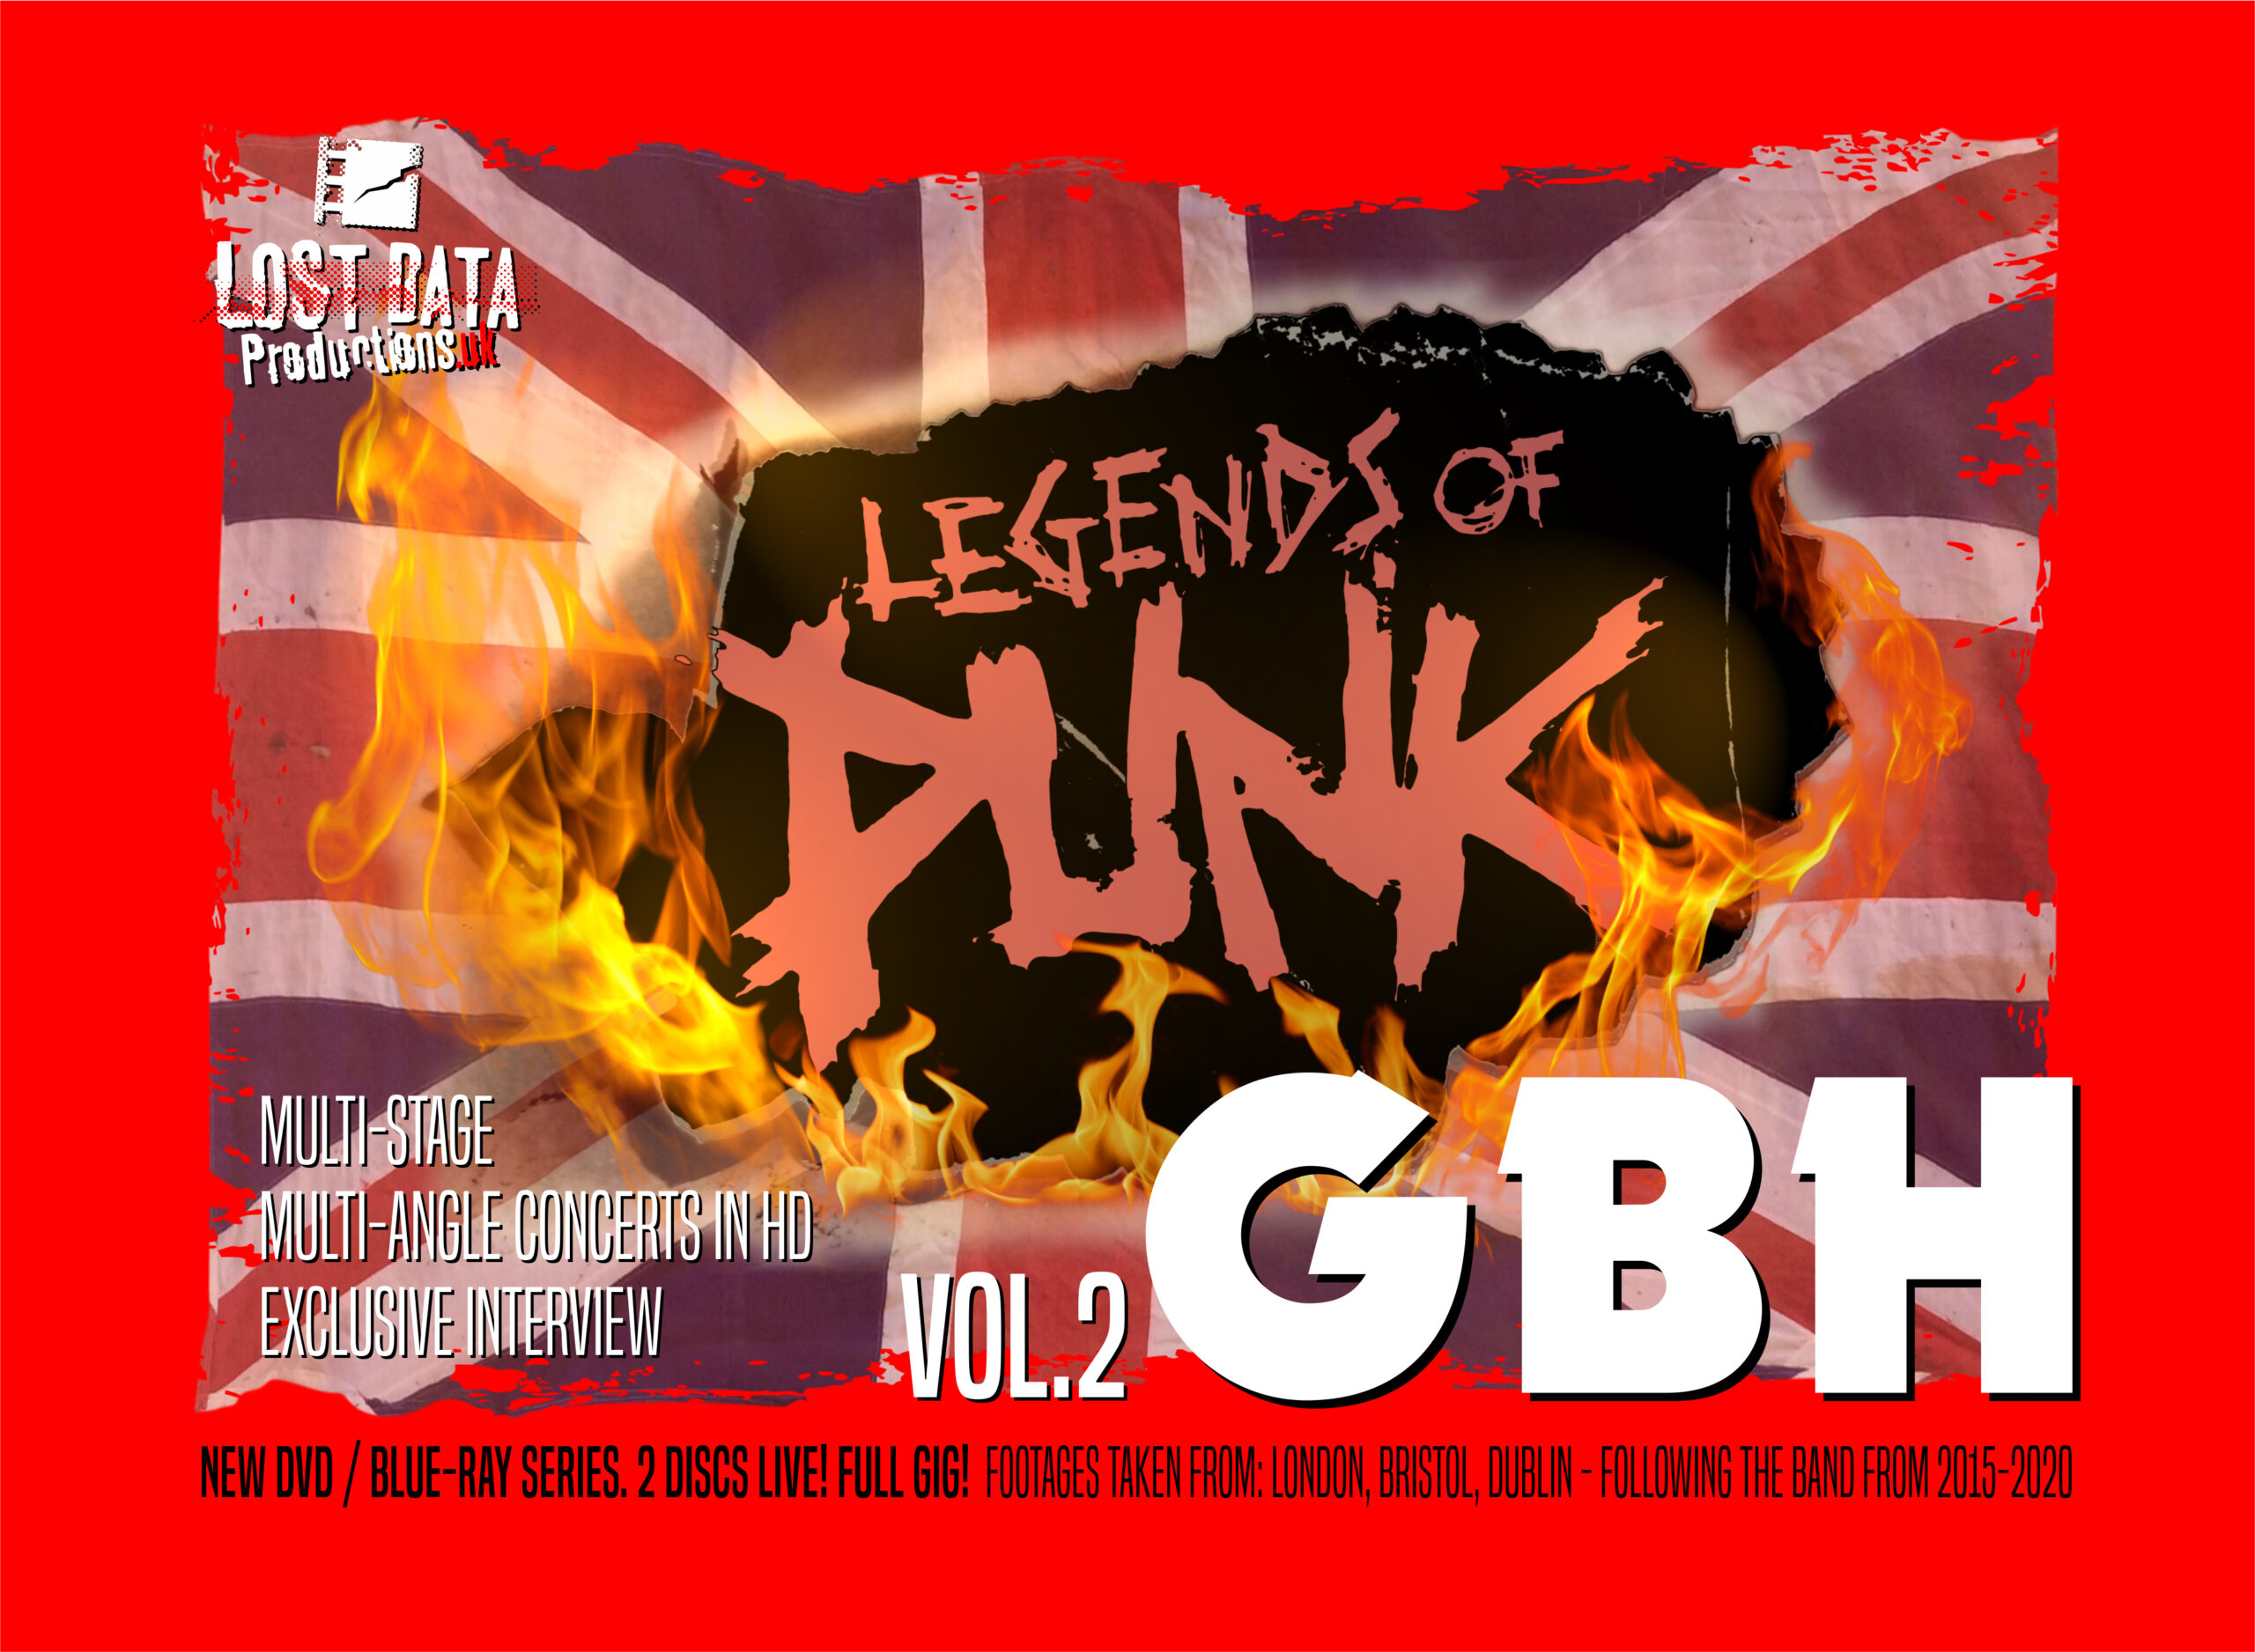 GBH Legends of Punk